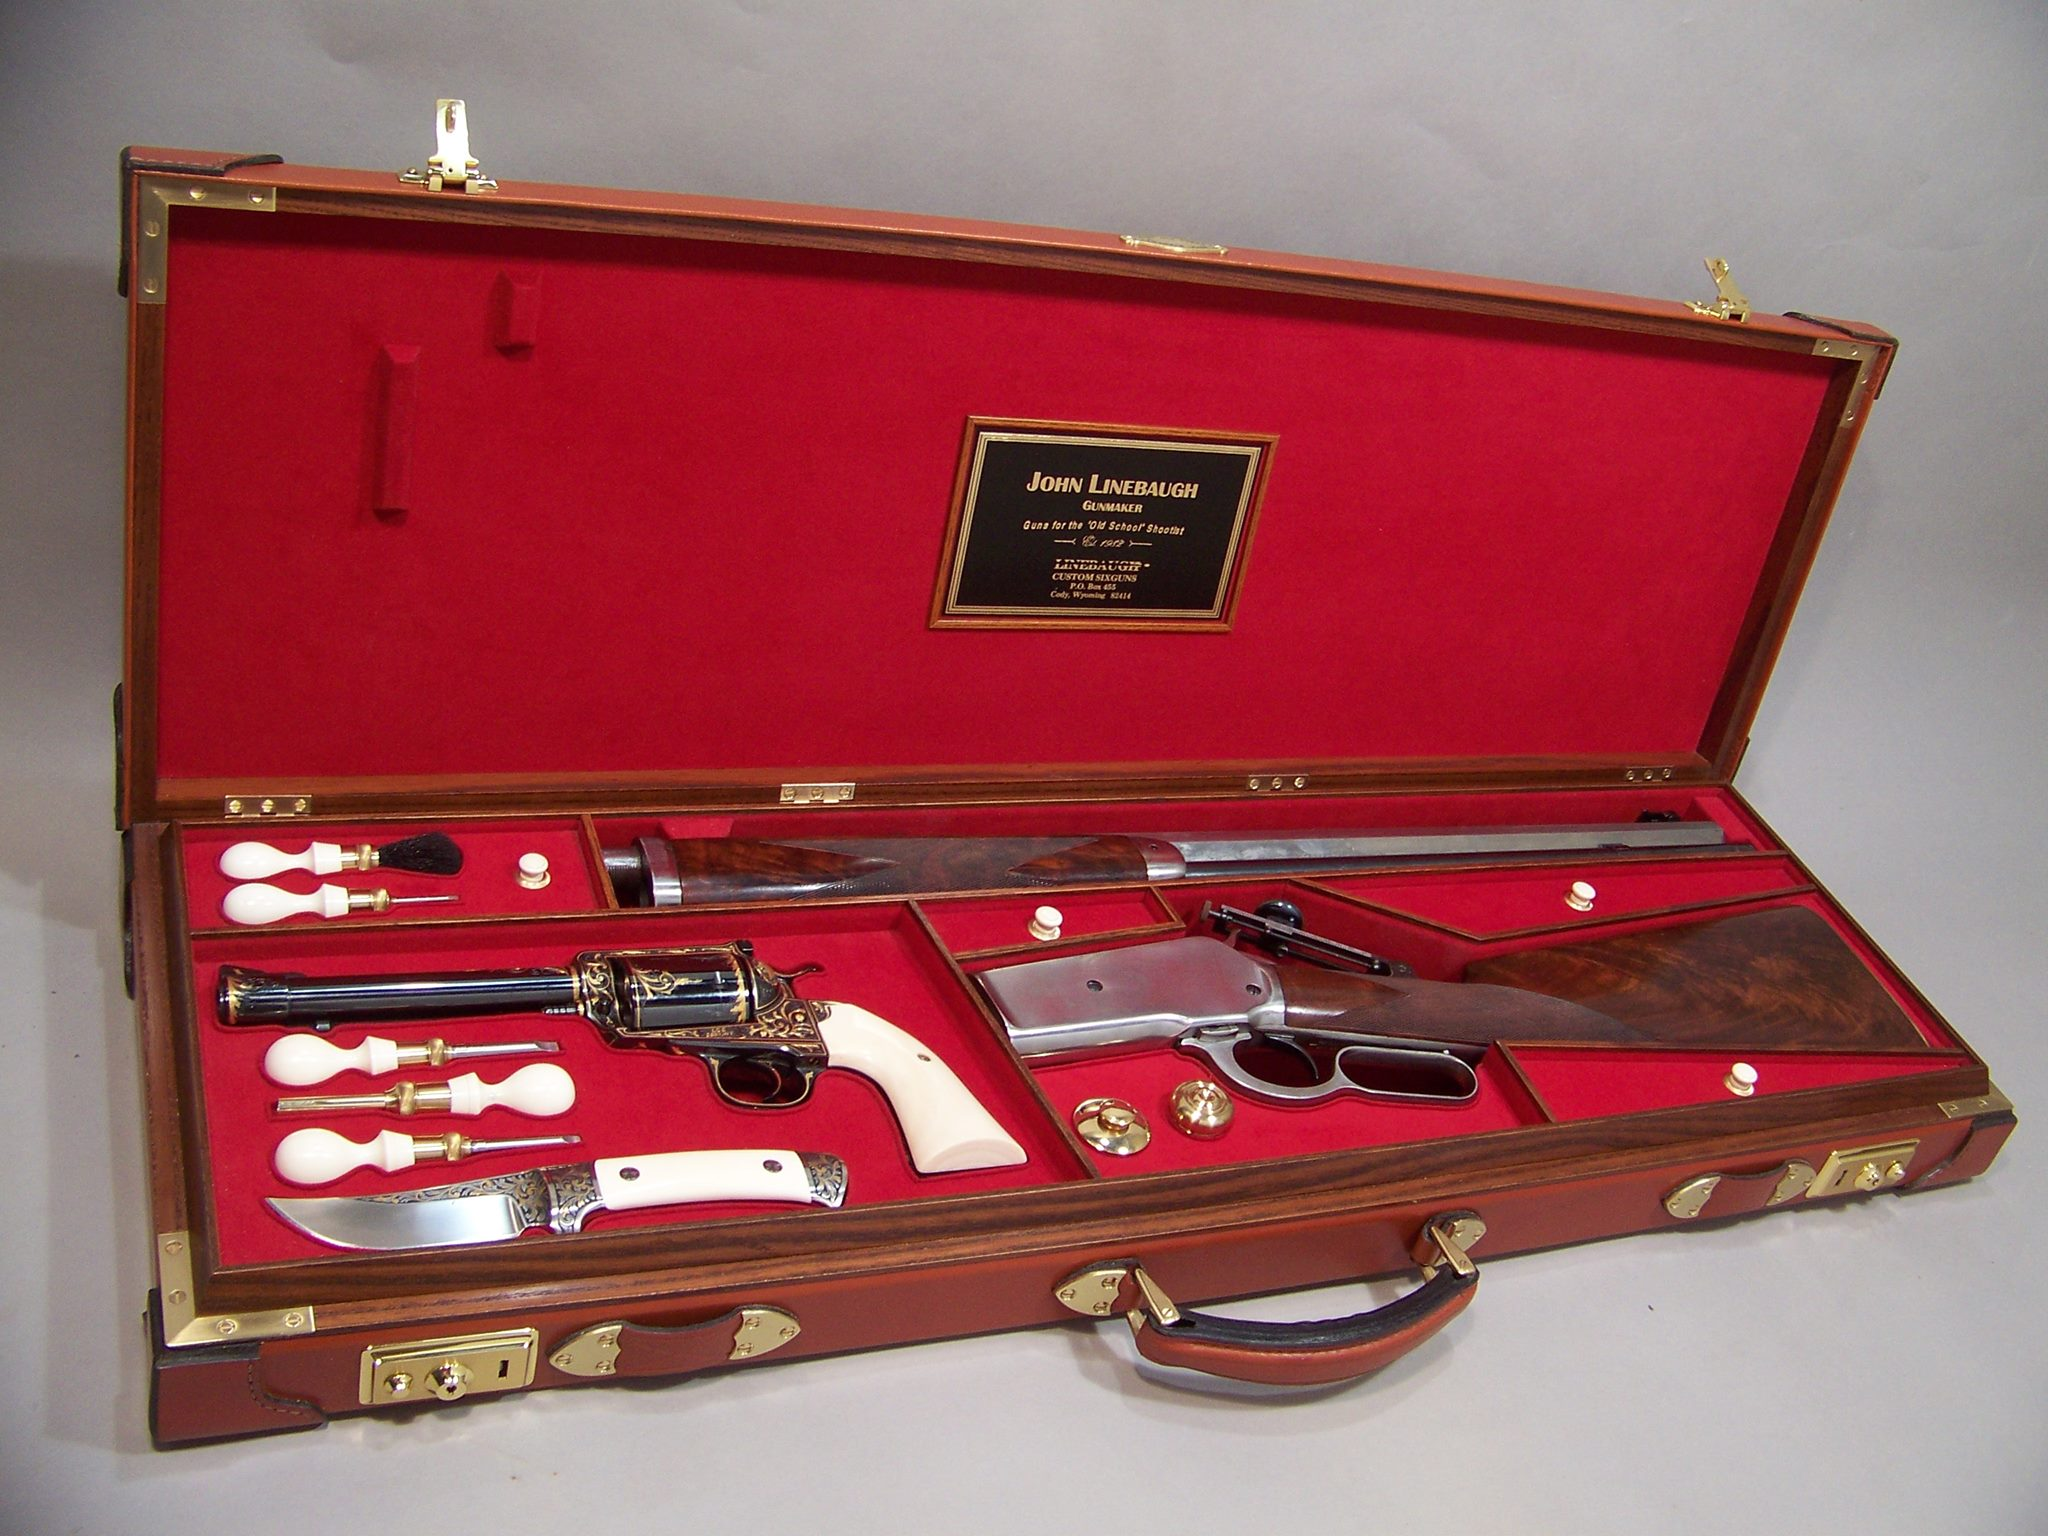 Trunk case for multiple firearms